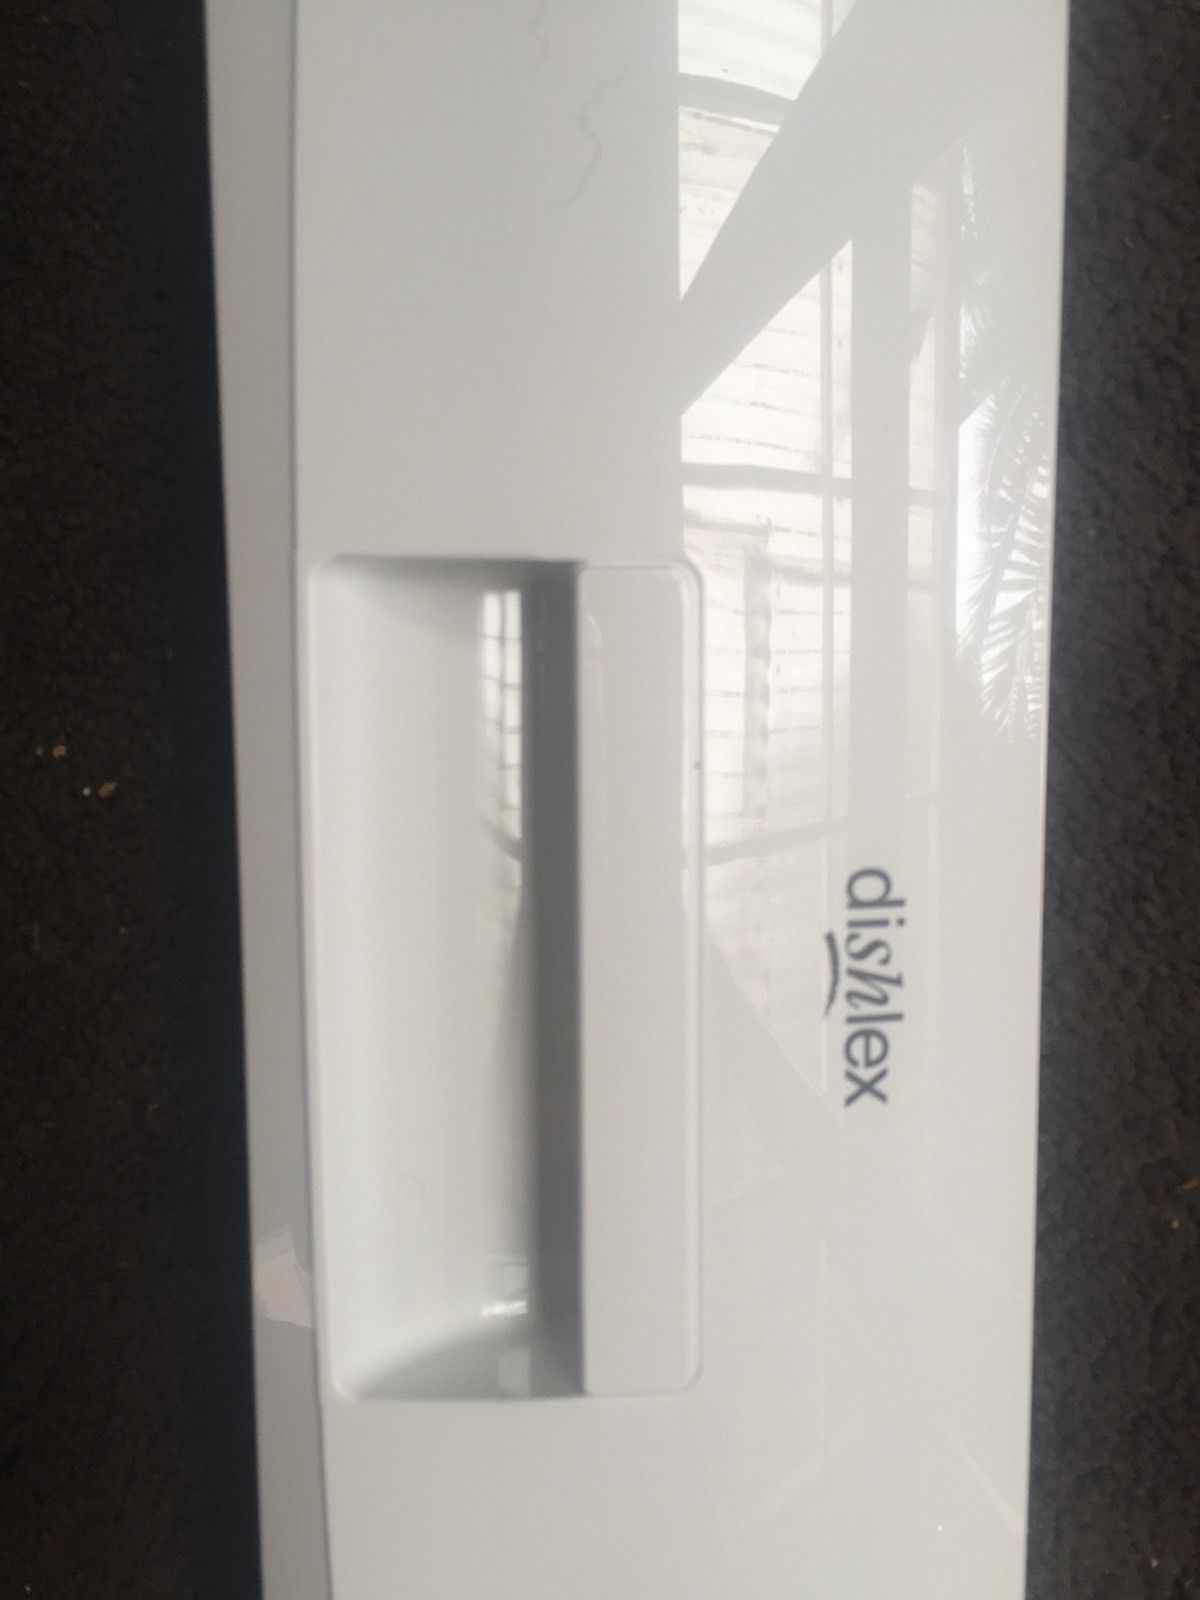 1560723-0/15: Dishlex Dishwasher Control Panel For DX203WK GENUINE